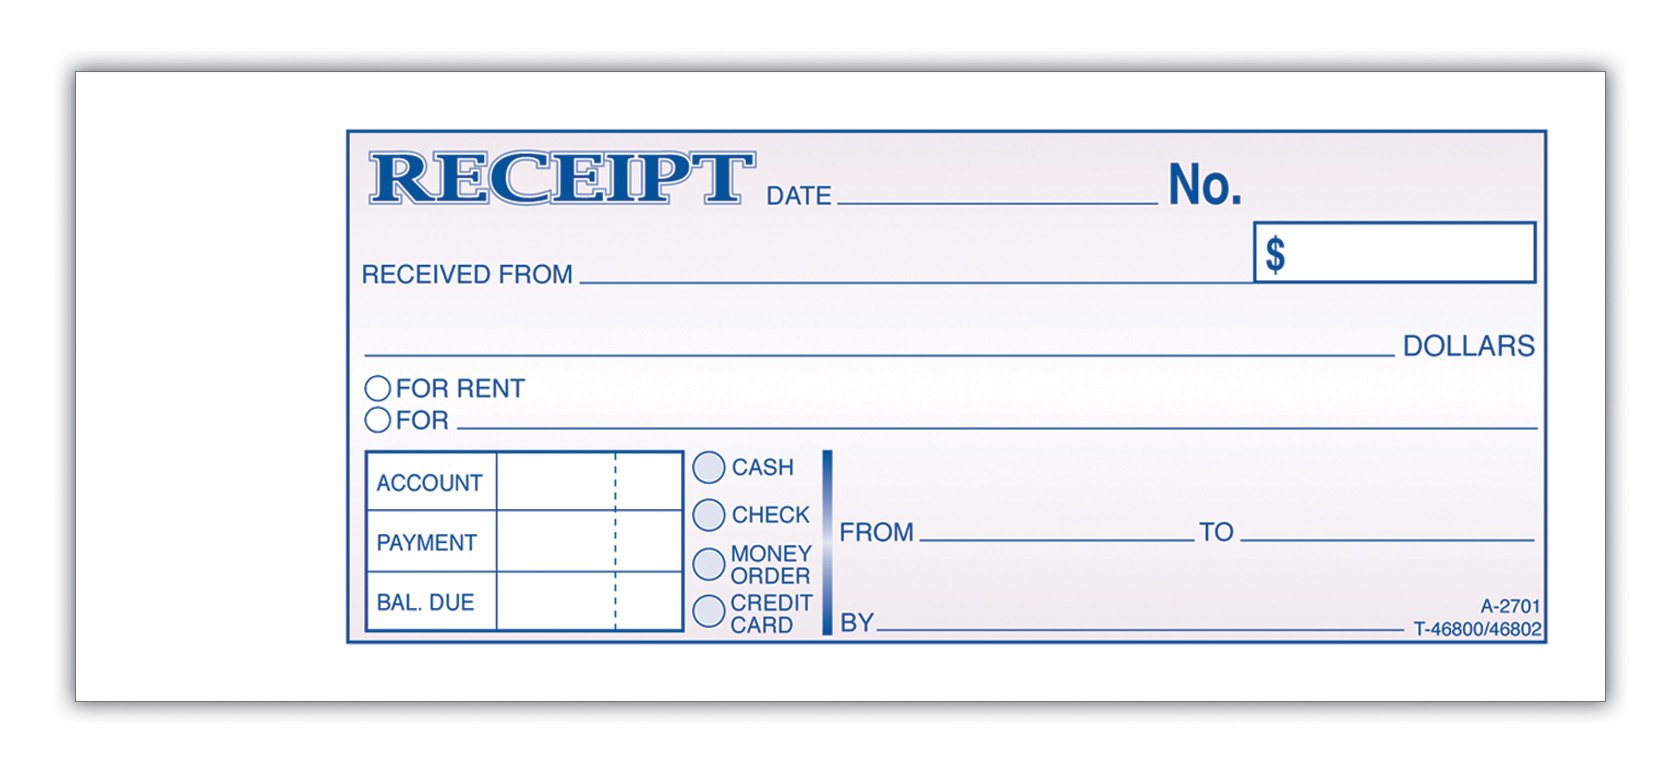 rental receipts templates best accounting app for mac rental receipts templates